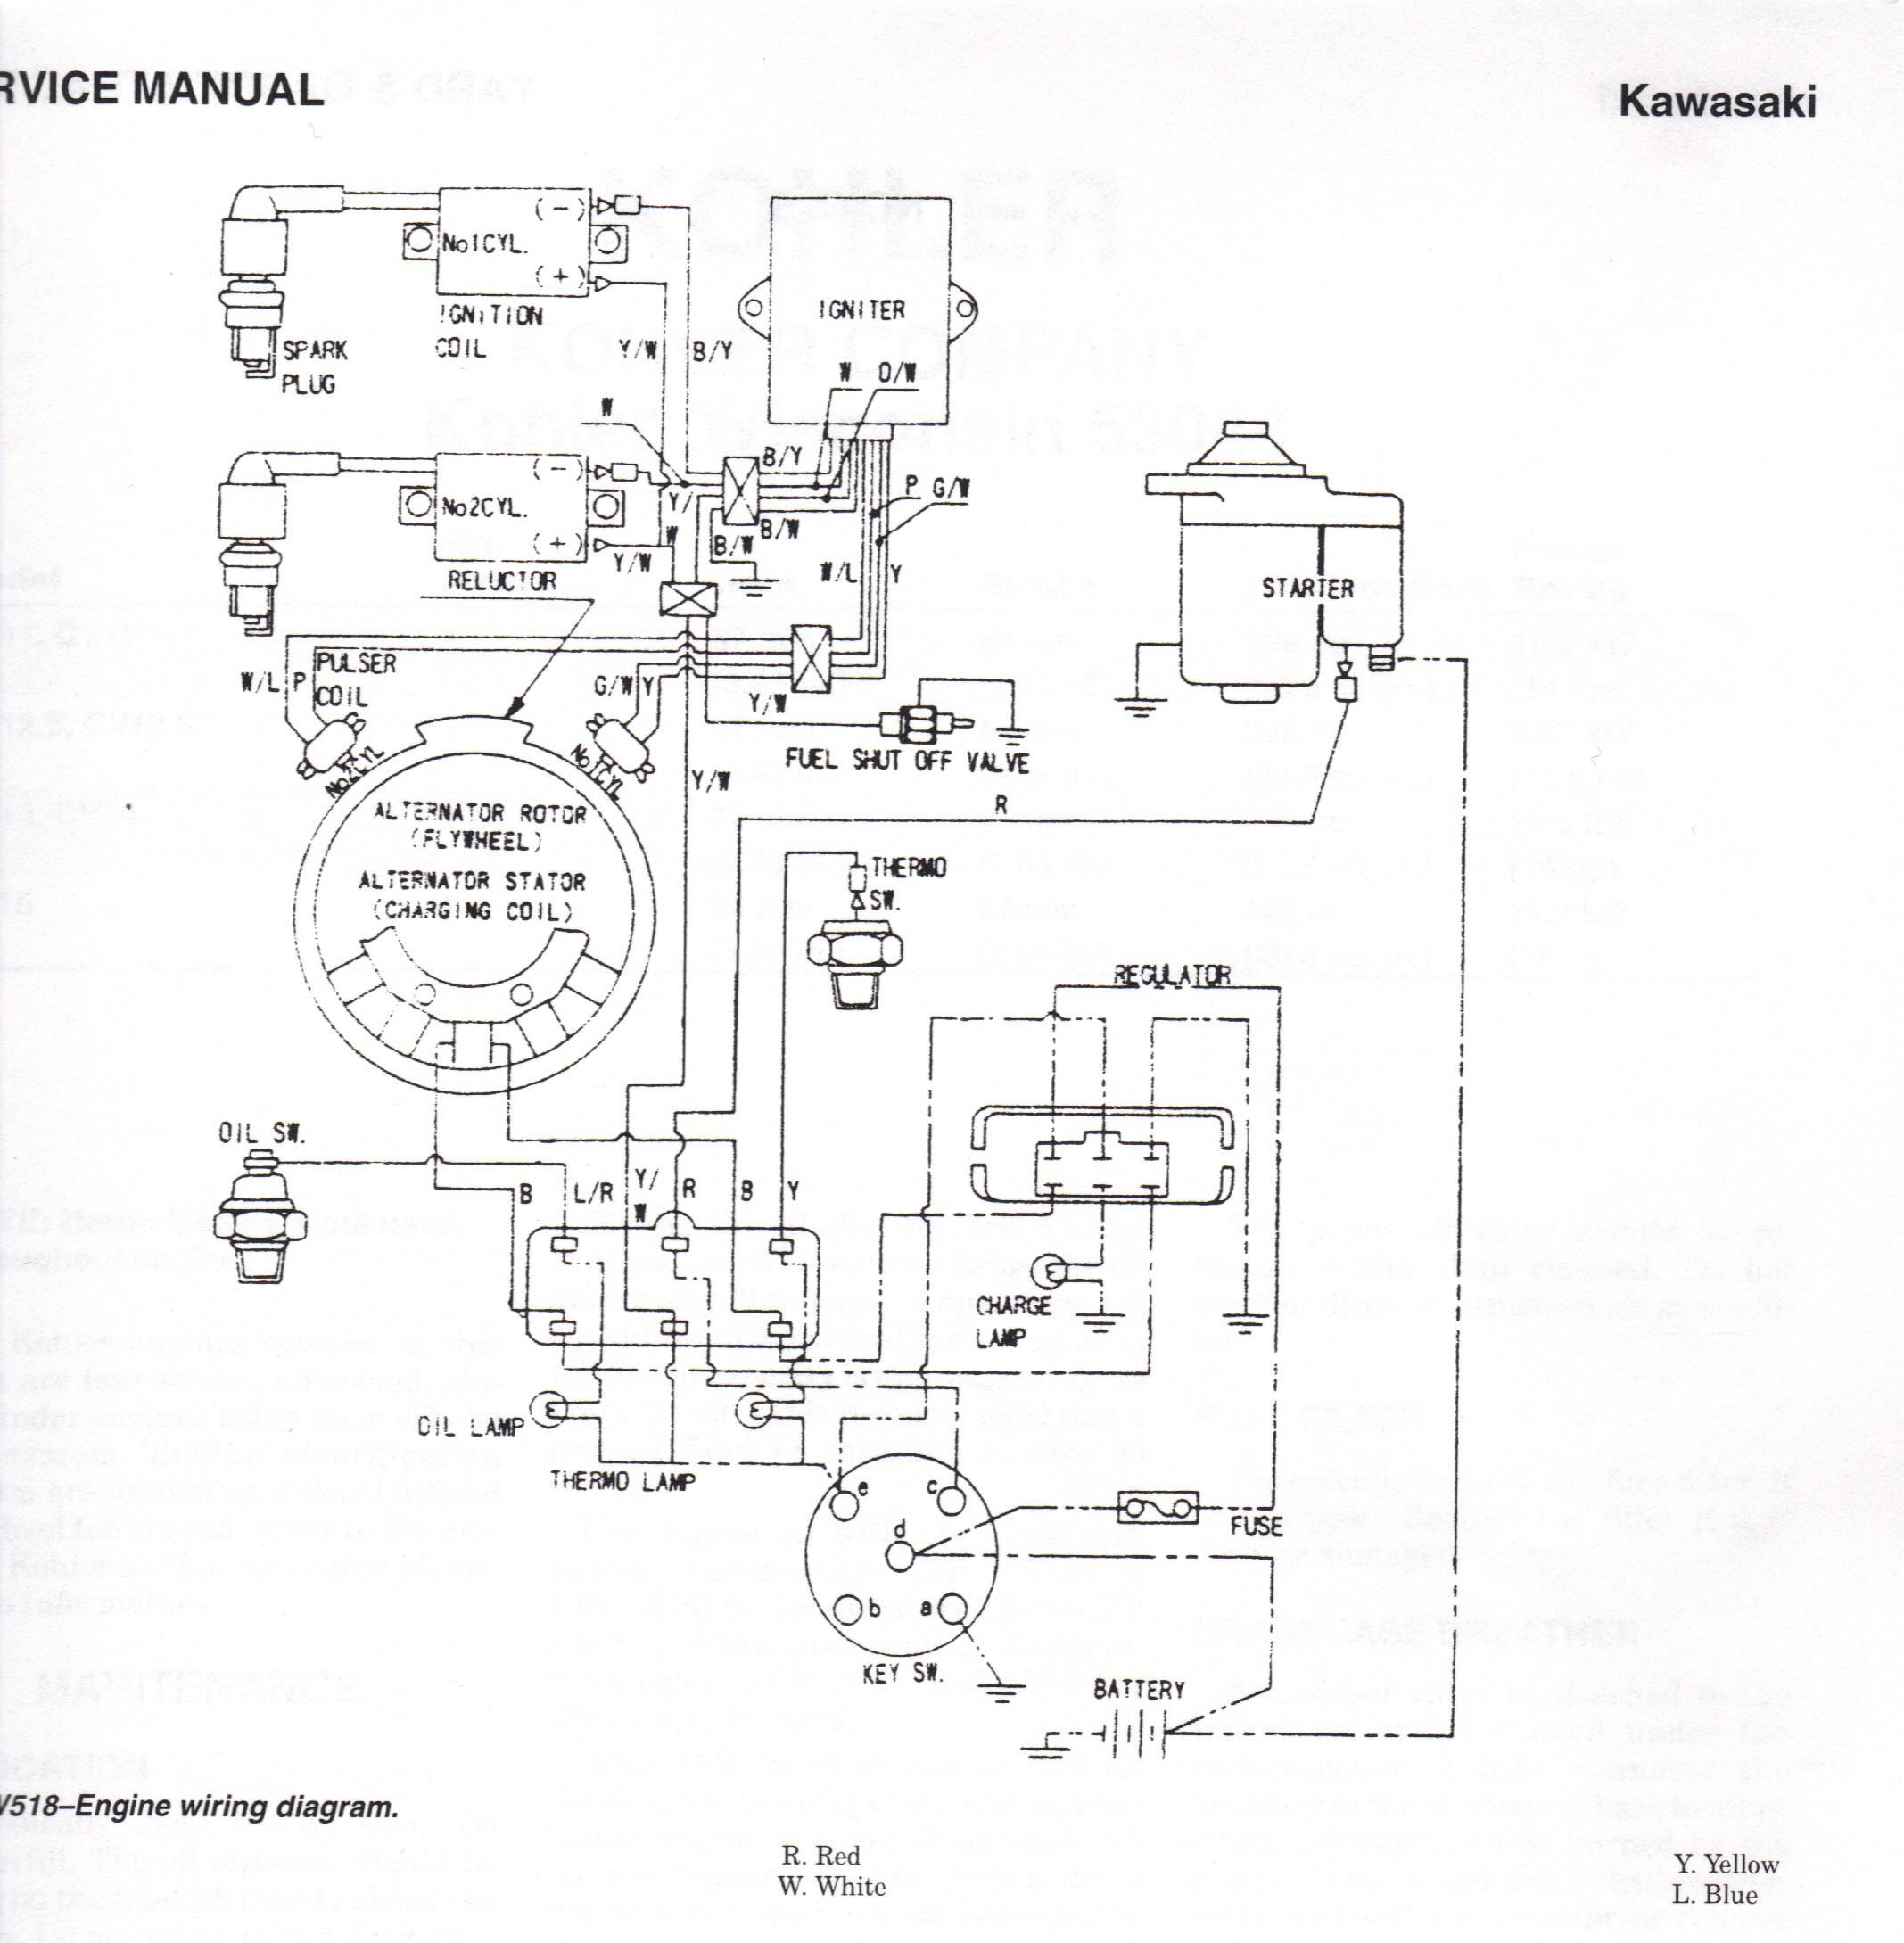 small resolution of john deere 757 wiring diagram wiring diagram newwiring diagrams for 757 john deere 25 hp kawasaki